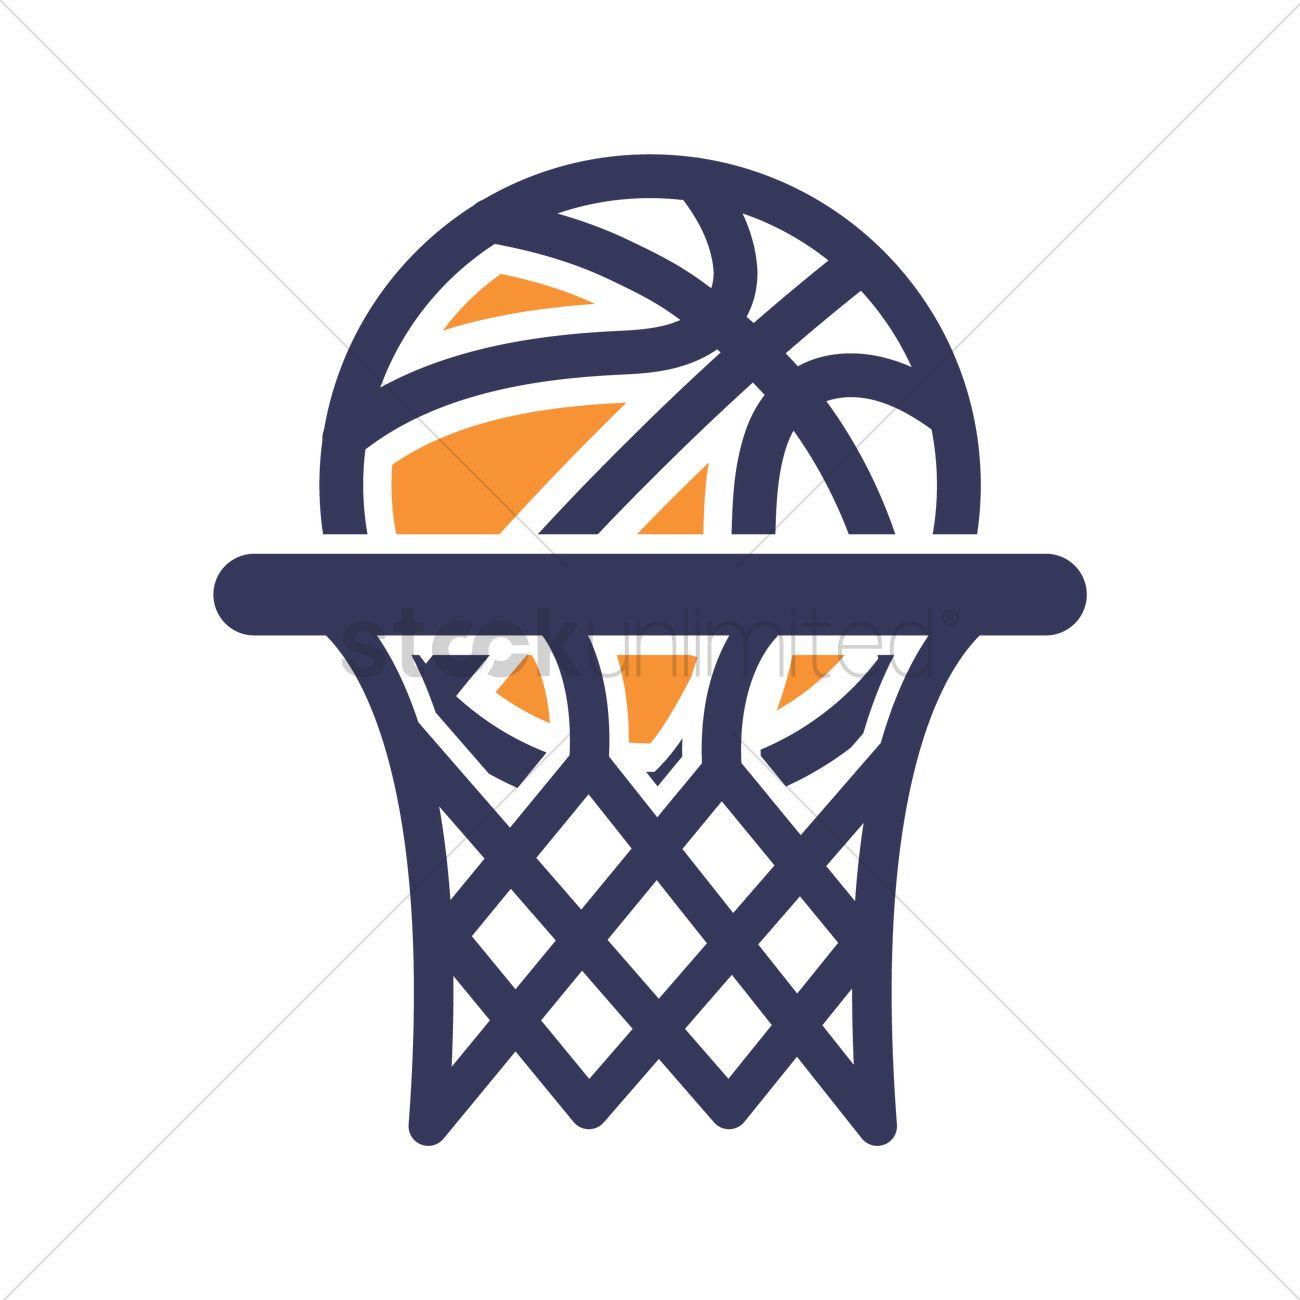 1300x1300 Basketball Hoop Icon Vector Image